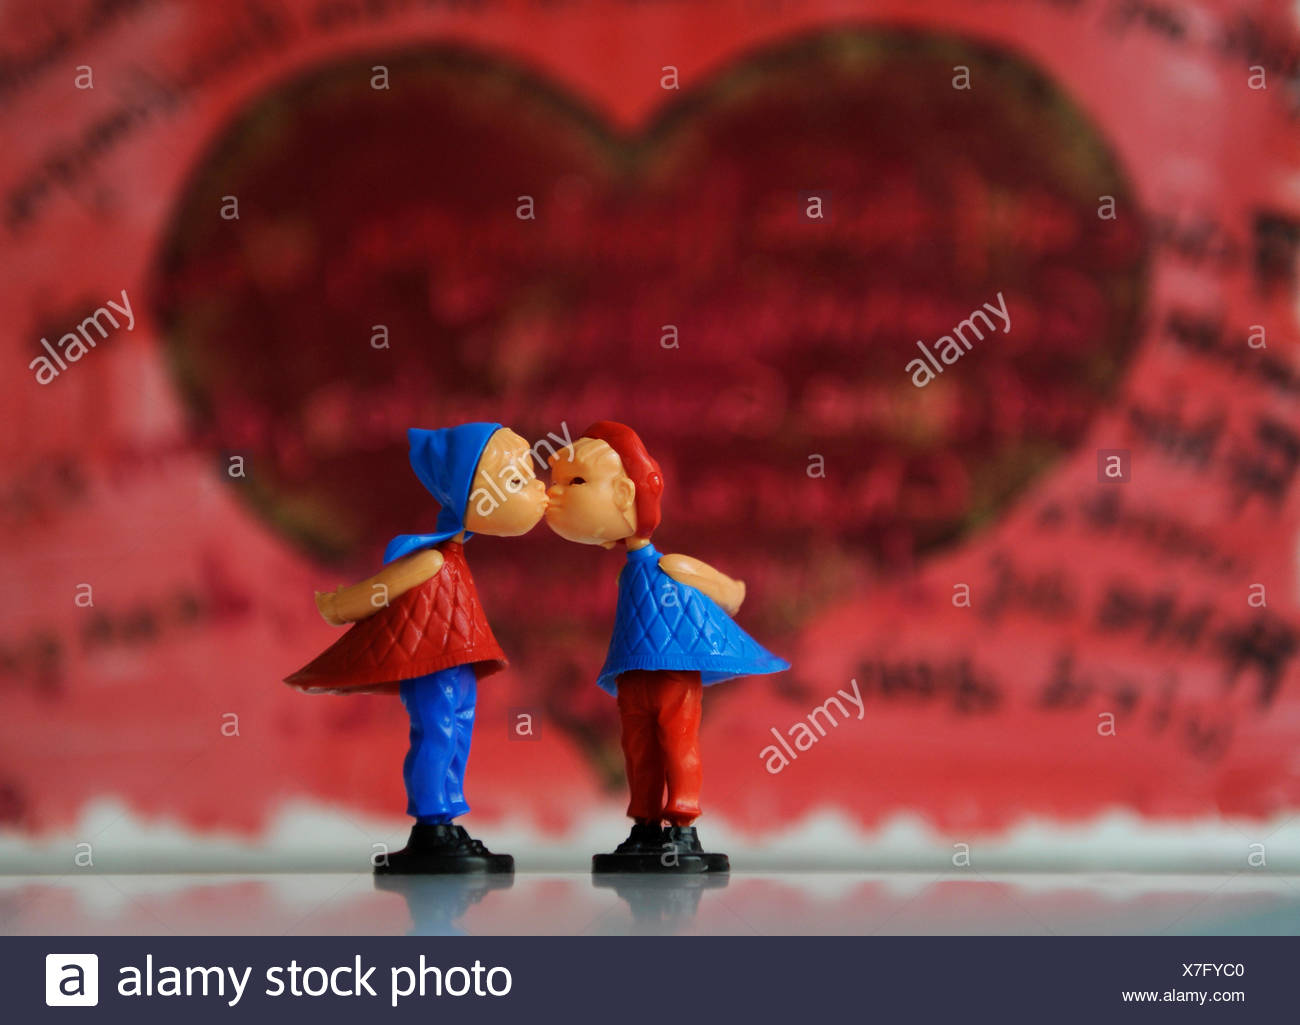 Kissing figures, symbolic image for love, partnership, marriage - Stock Image